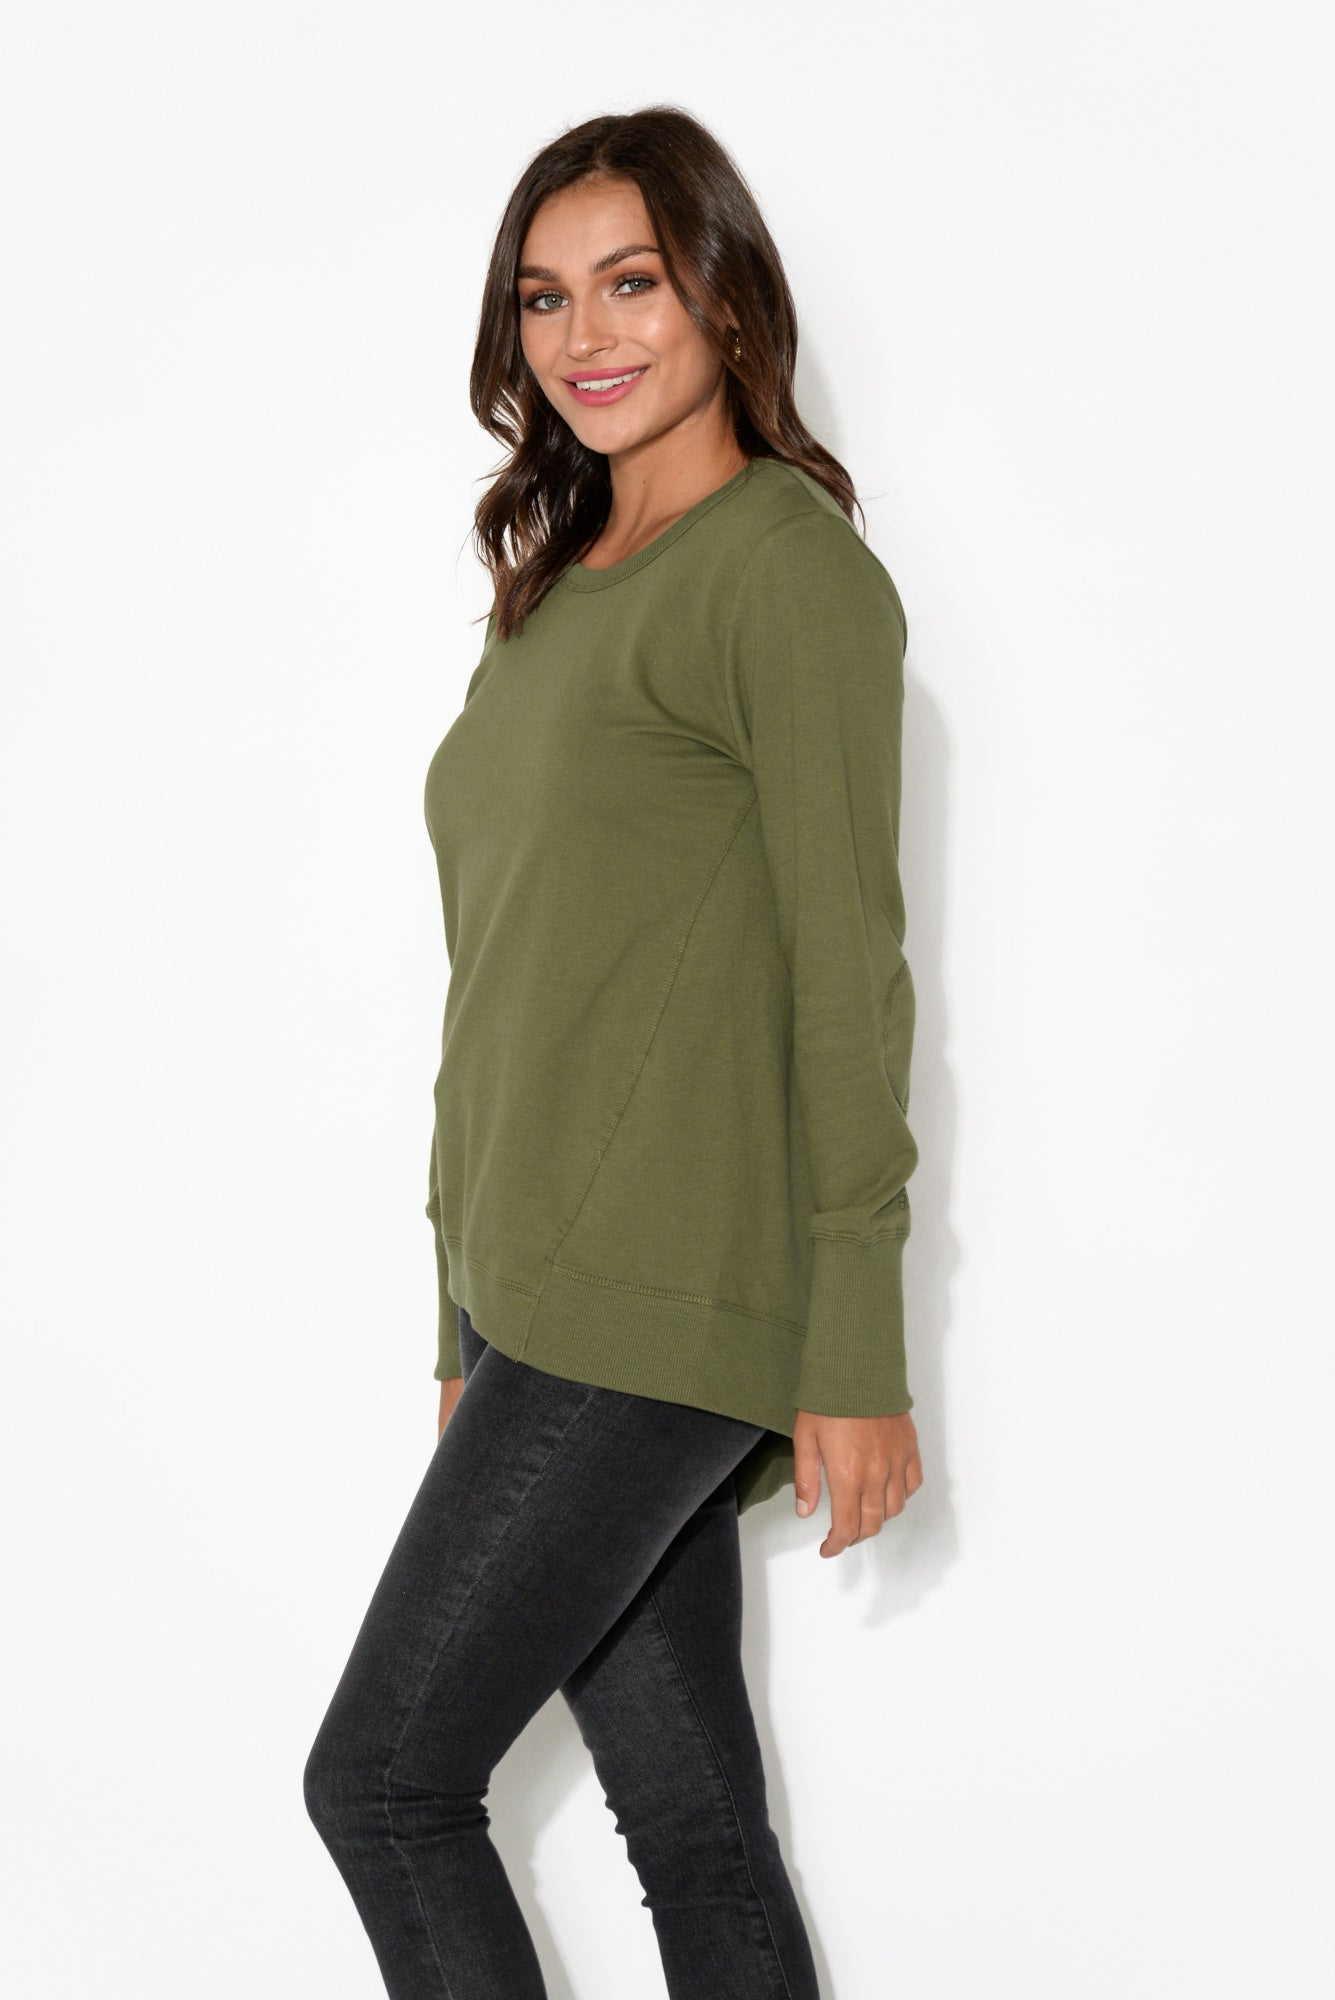 Dolly Khaki Jumper